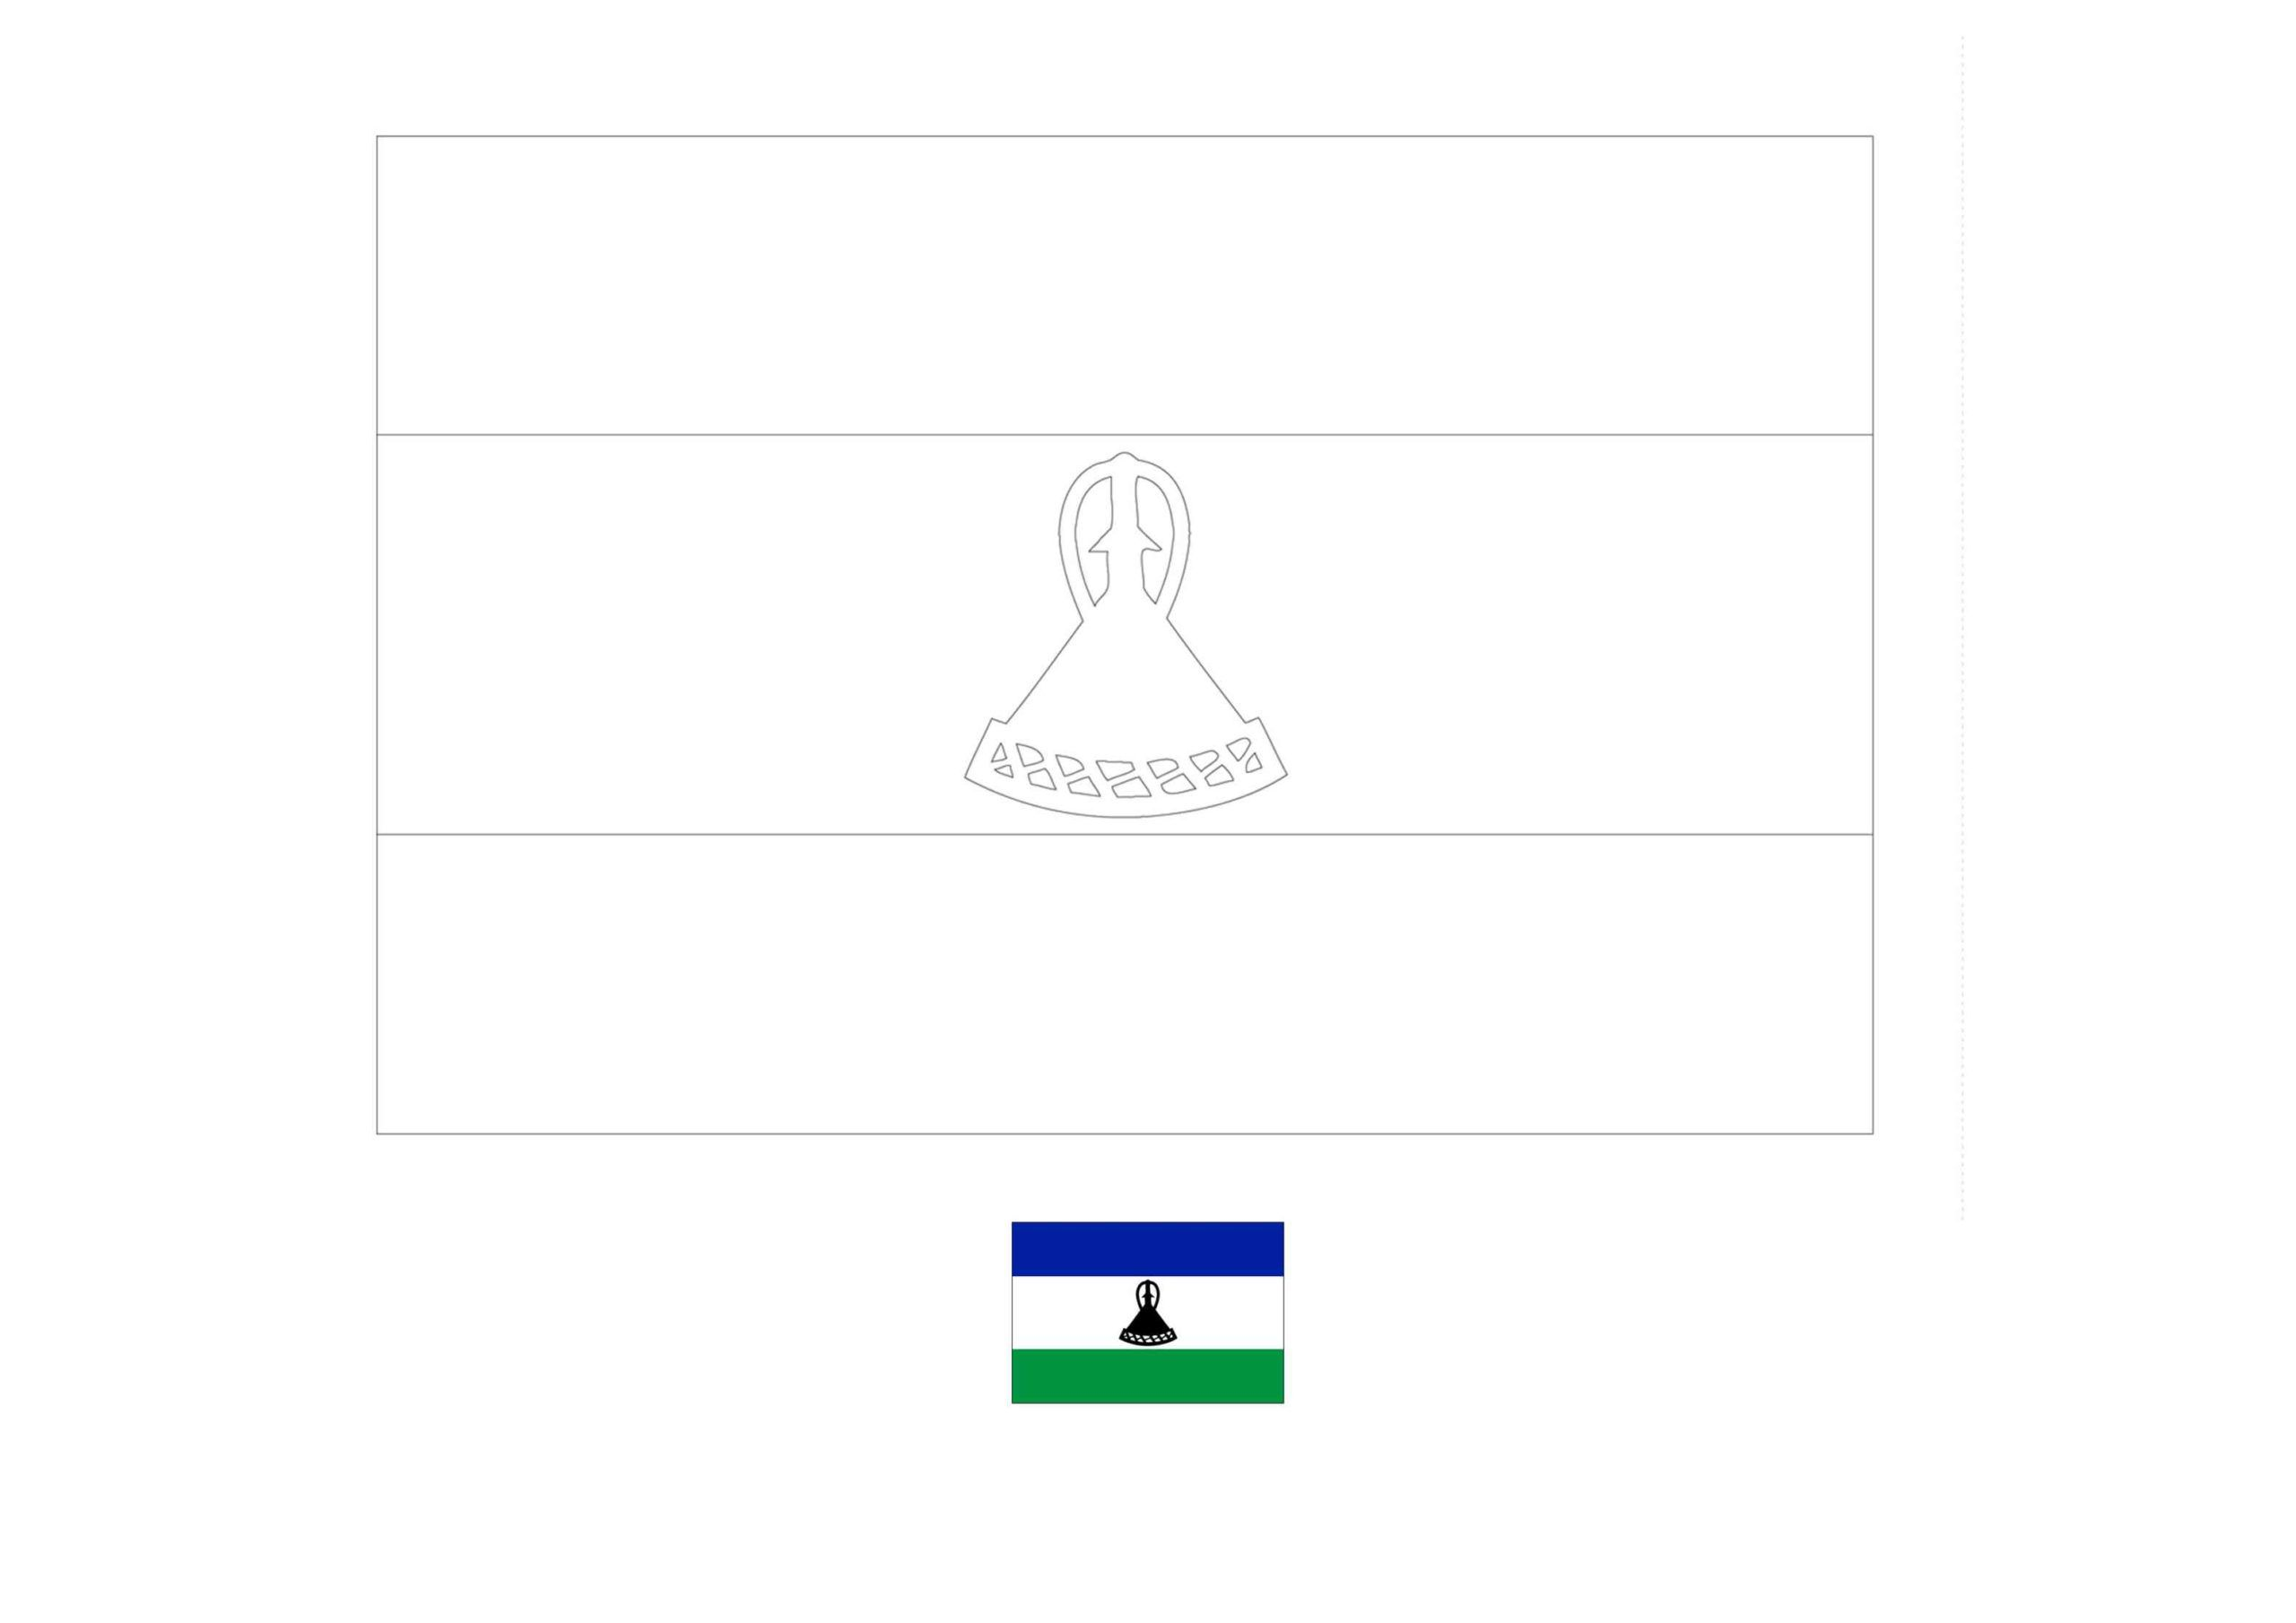 Lesotho Flag Coloring Page In 2020 Flag Coloring Pages Coloring Pages Lesotho Flag